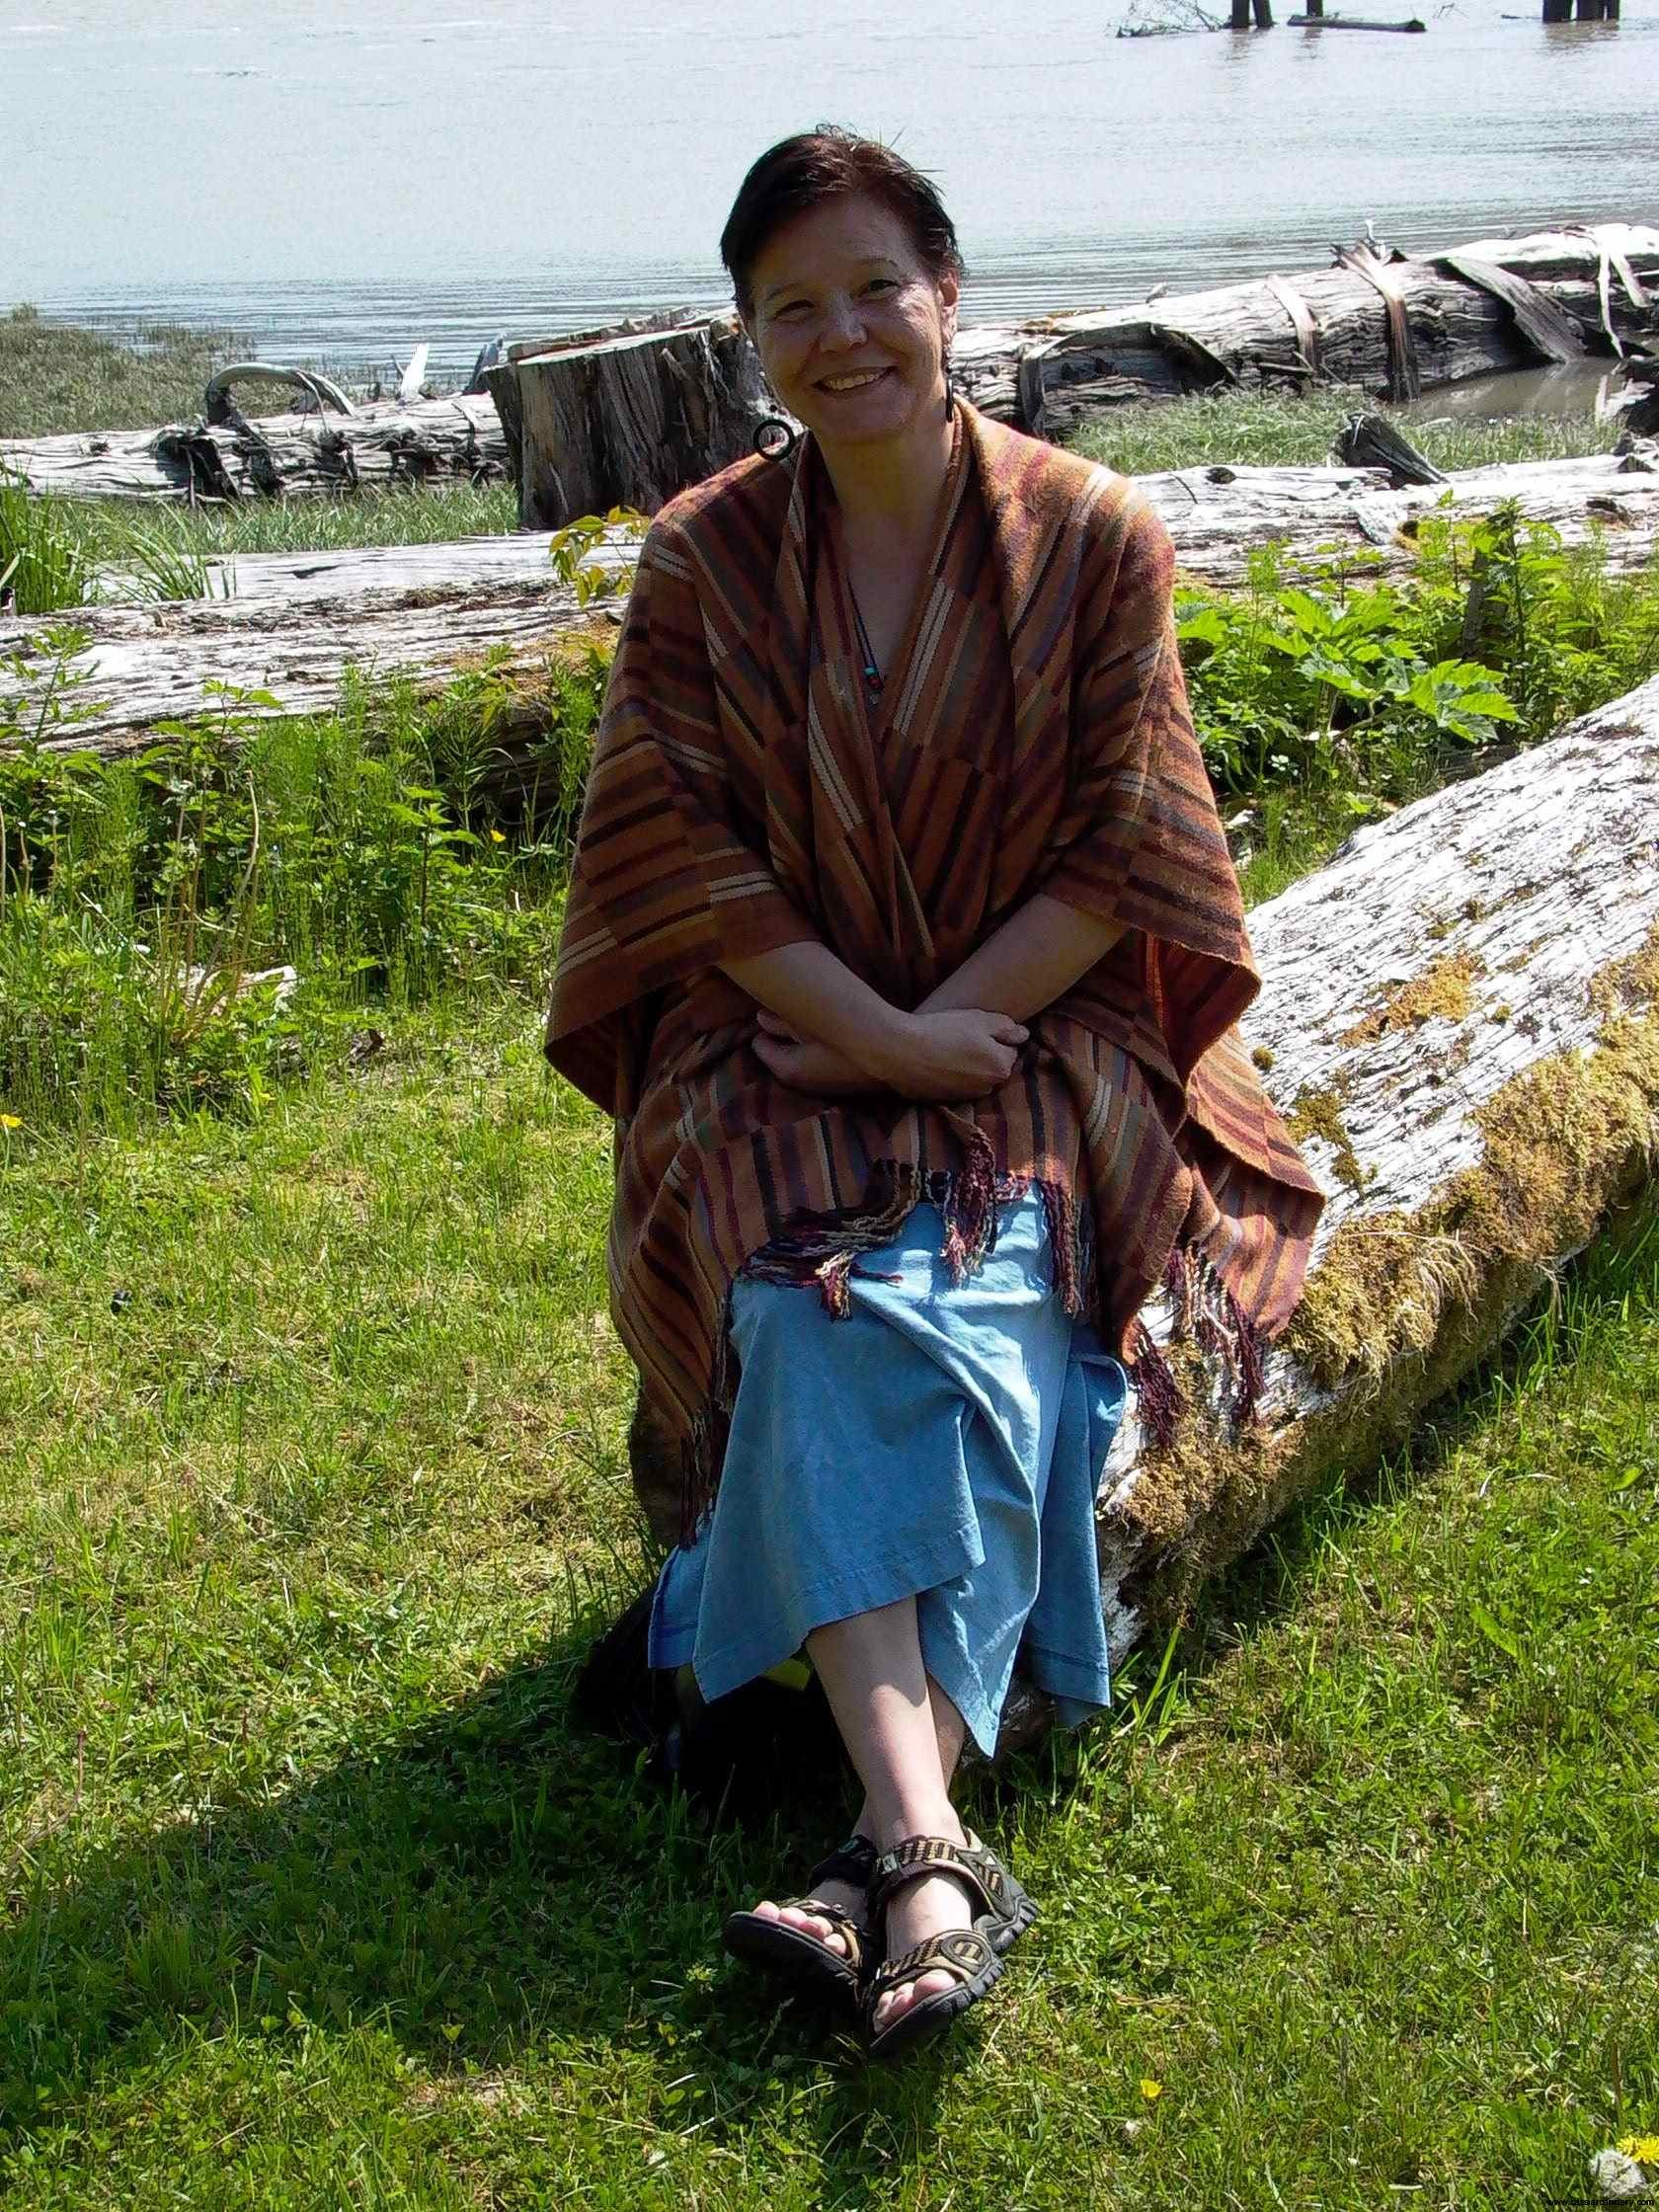 Cassiar Community: Alice Kruta, Inverness Cannery- worked at Cassiar in 1981 cleaning fish